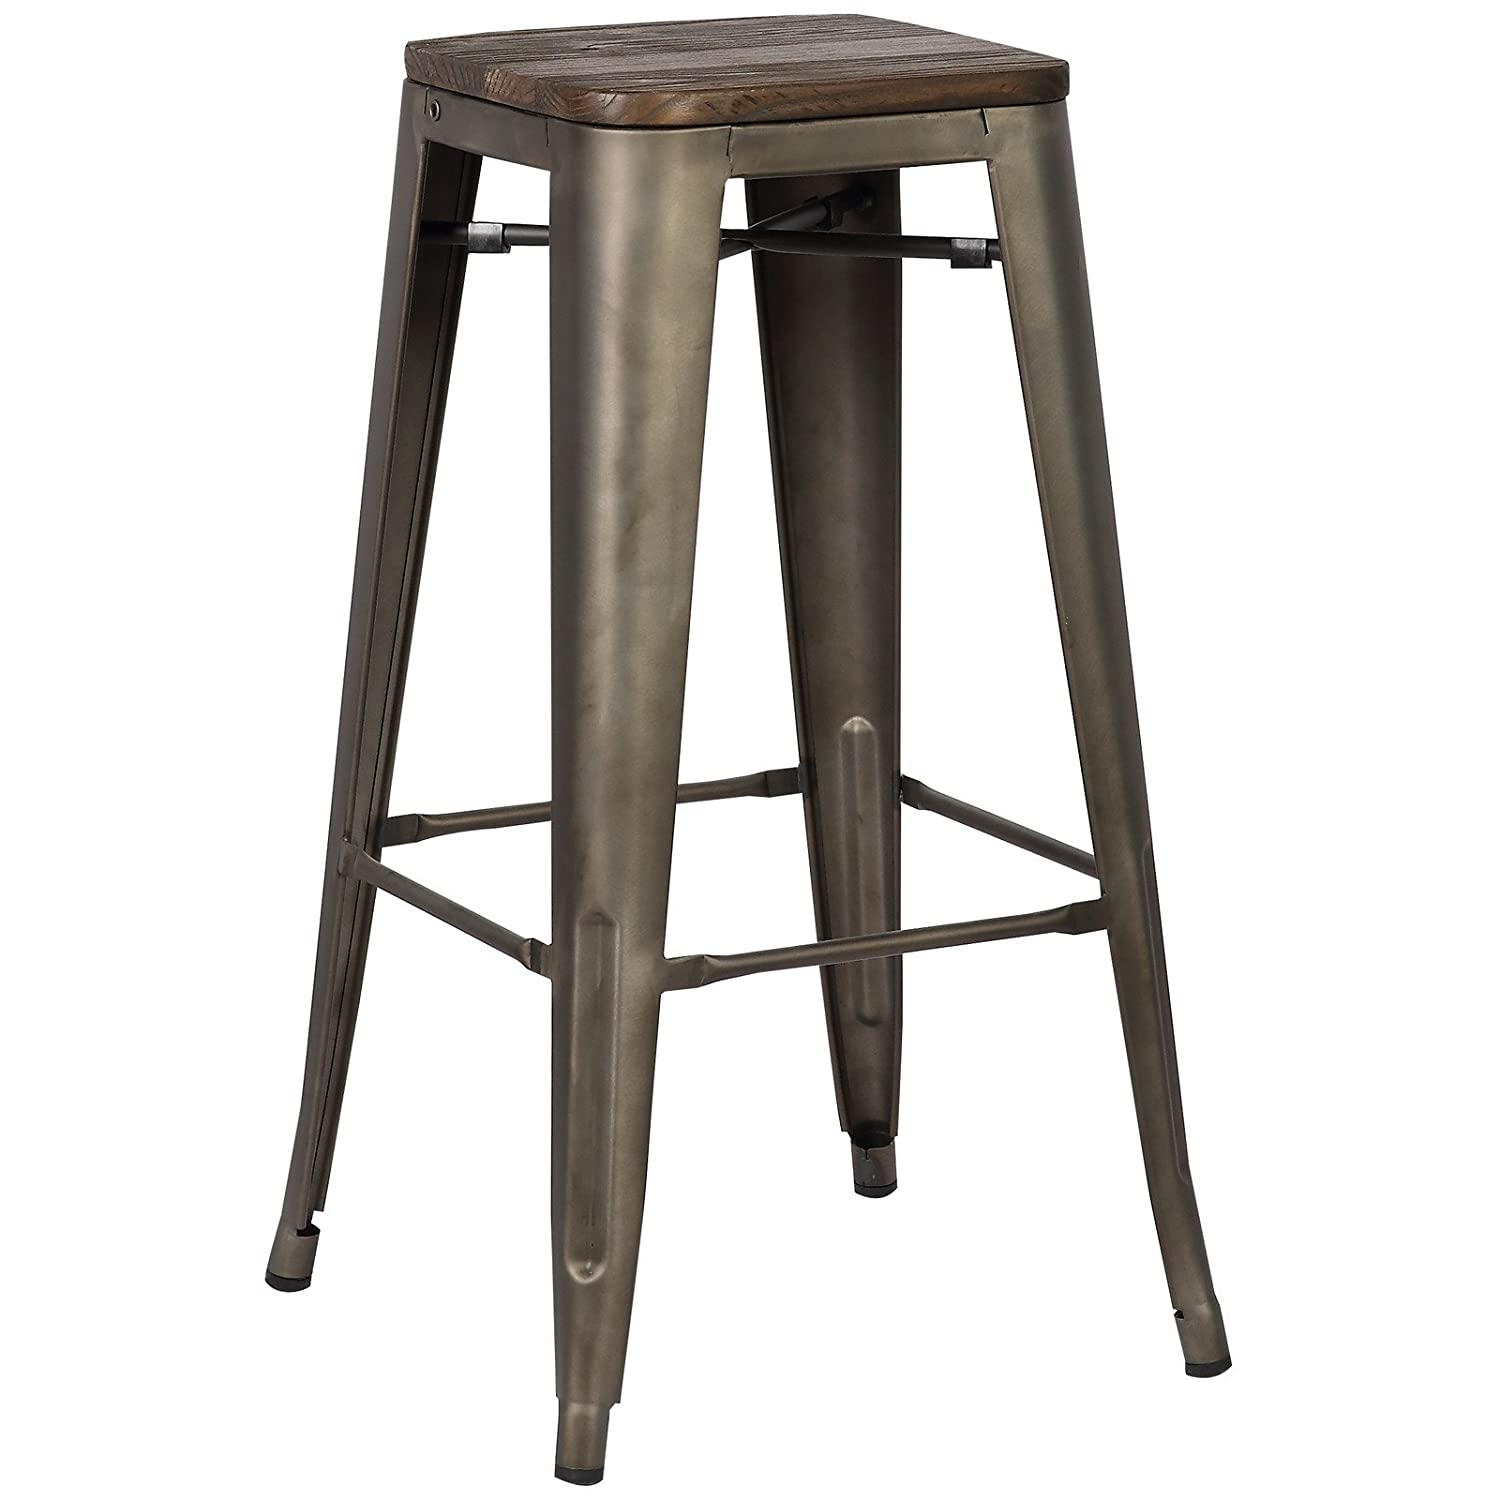 Poly and Bark Trattoria Bar Stool with Elm Wood Seat in Bronze